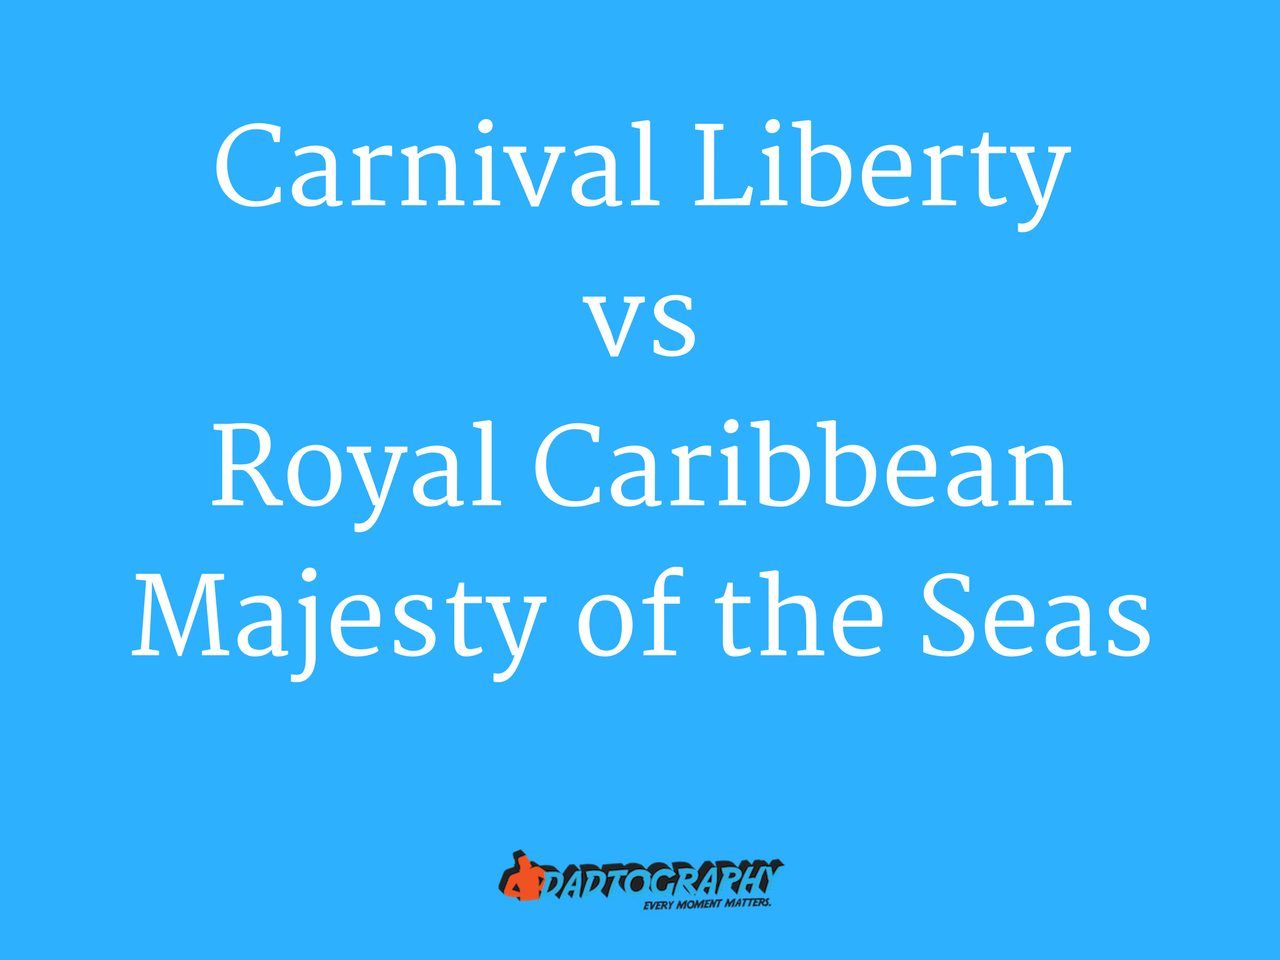 Carnival Liberty vs Royal Caribbean Majesty of the Seas